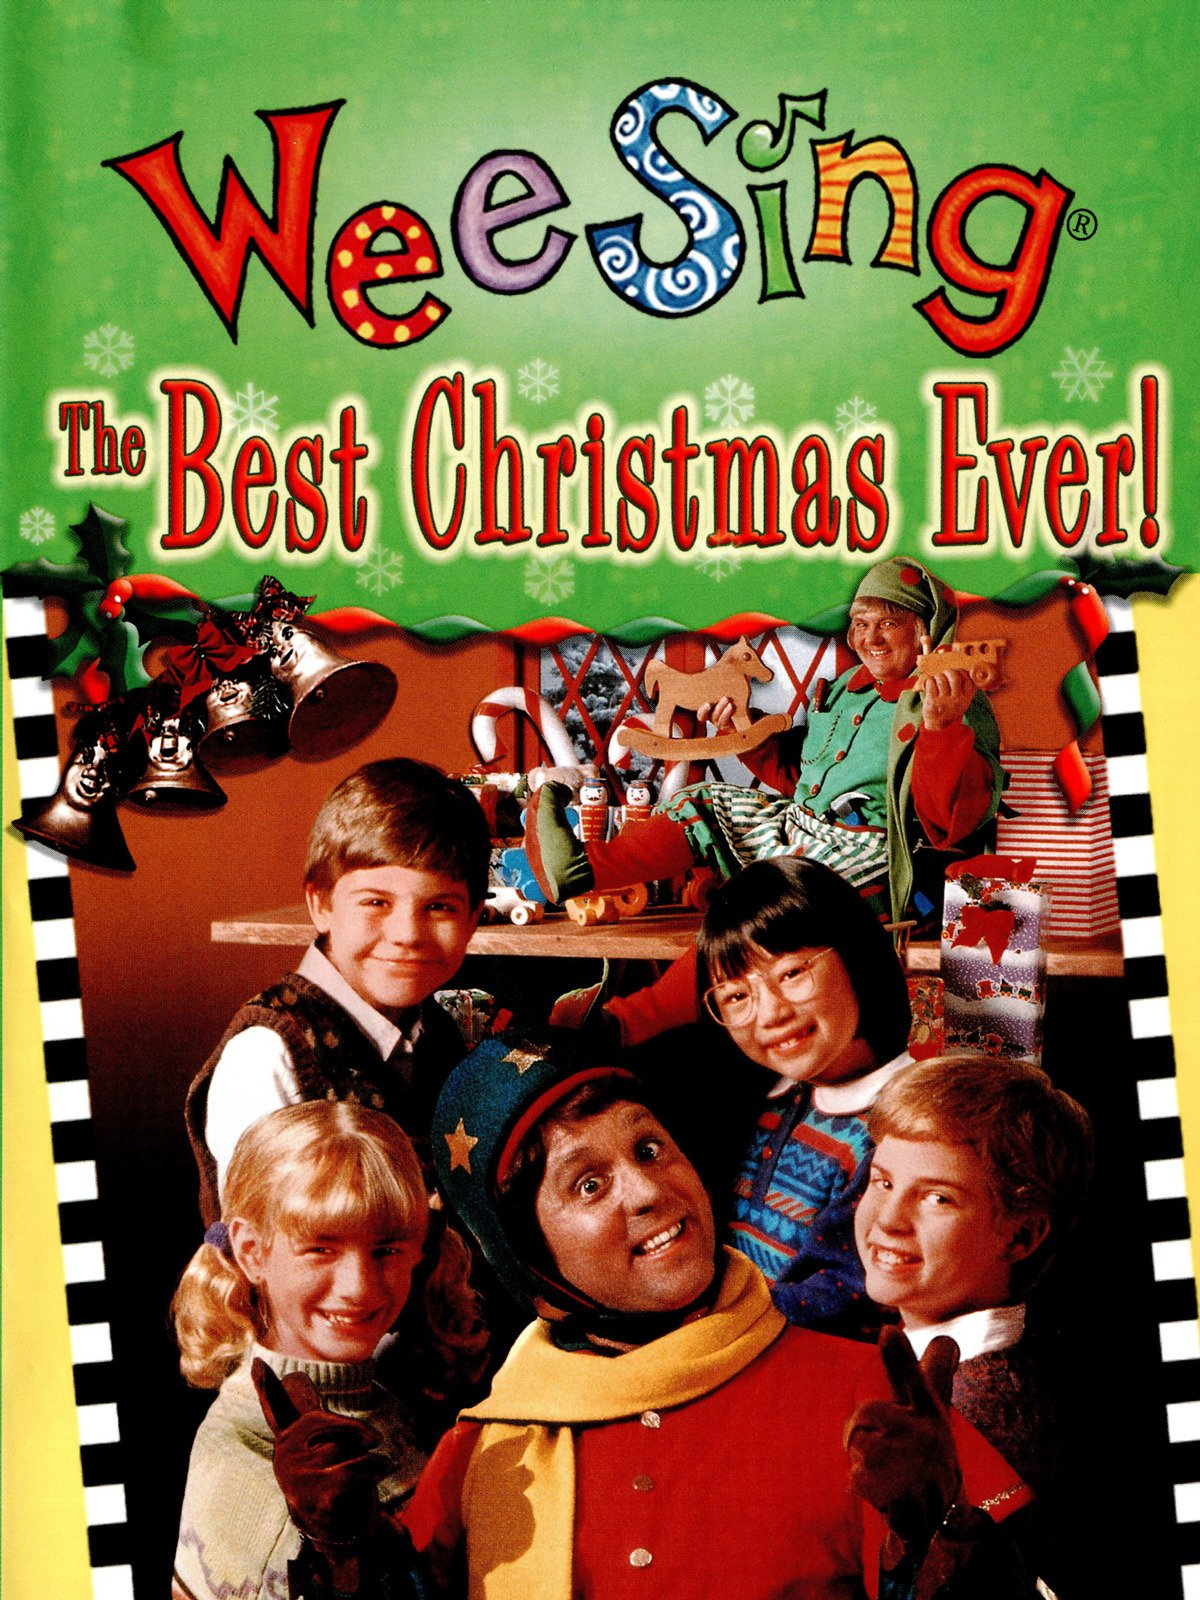 Wee Sing The Best Christmas Ever Vhs.Amazon Com Watch Wee Sing The Best Christmas Ever Prime